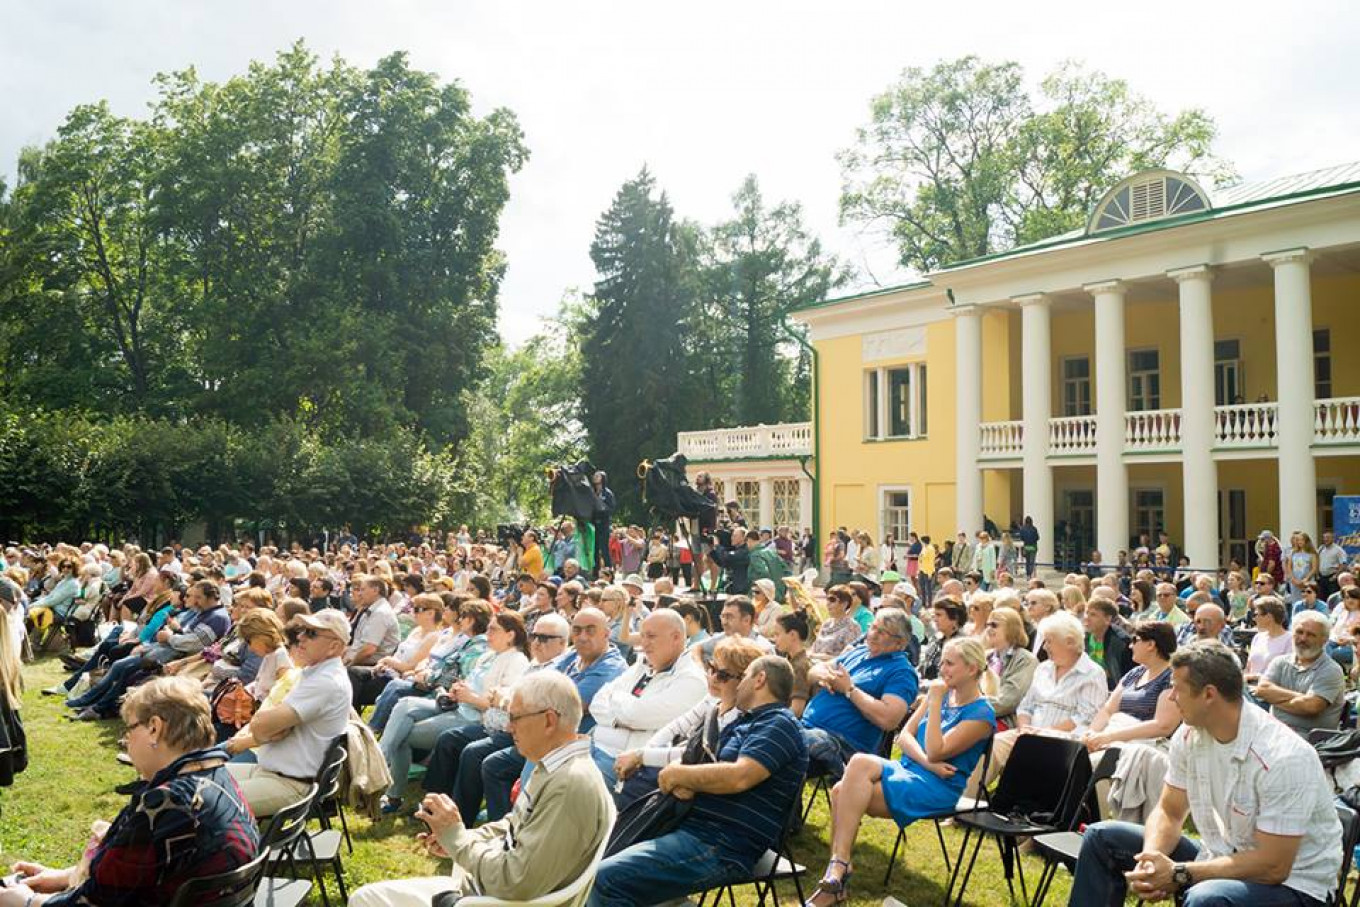 Jazz Seasons kicks off Moscow's summer festivals of jazz in the open air. jazzseasons